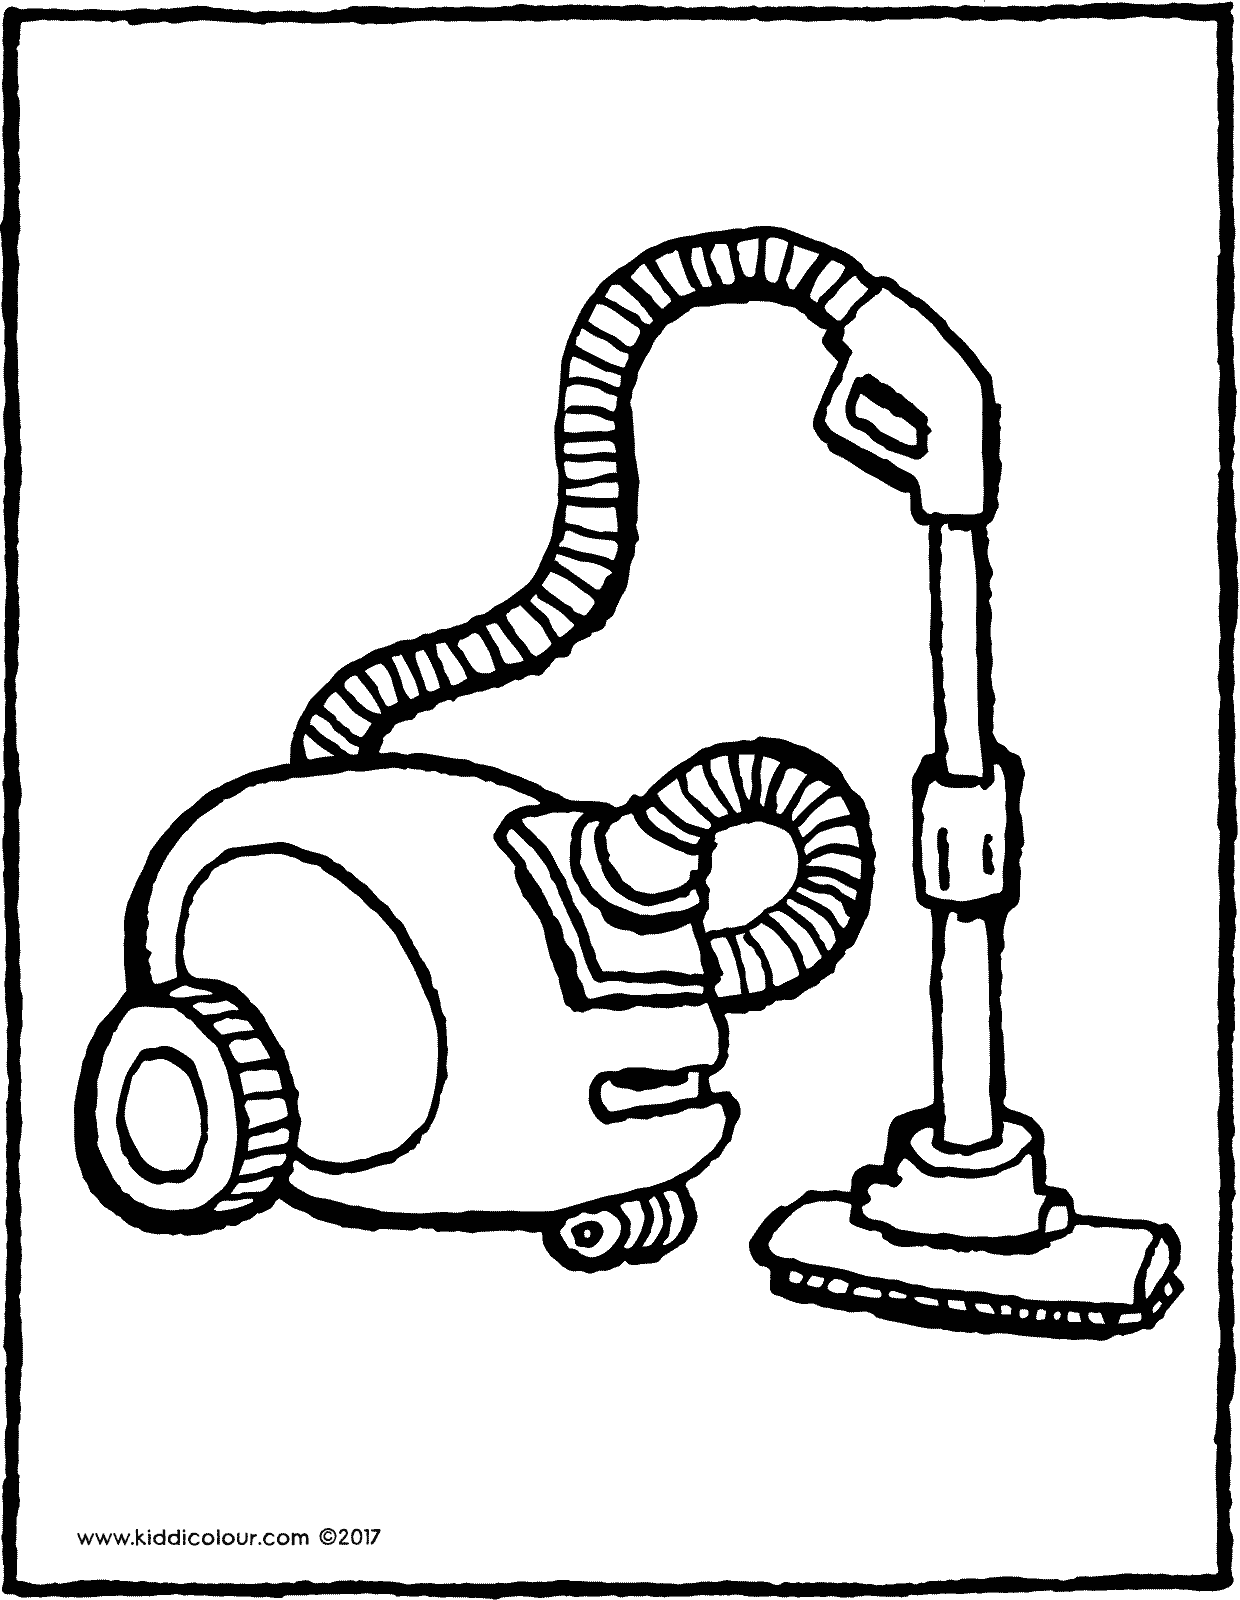 Vacuum cleaner vacuum cleaner hoover colouring page